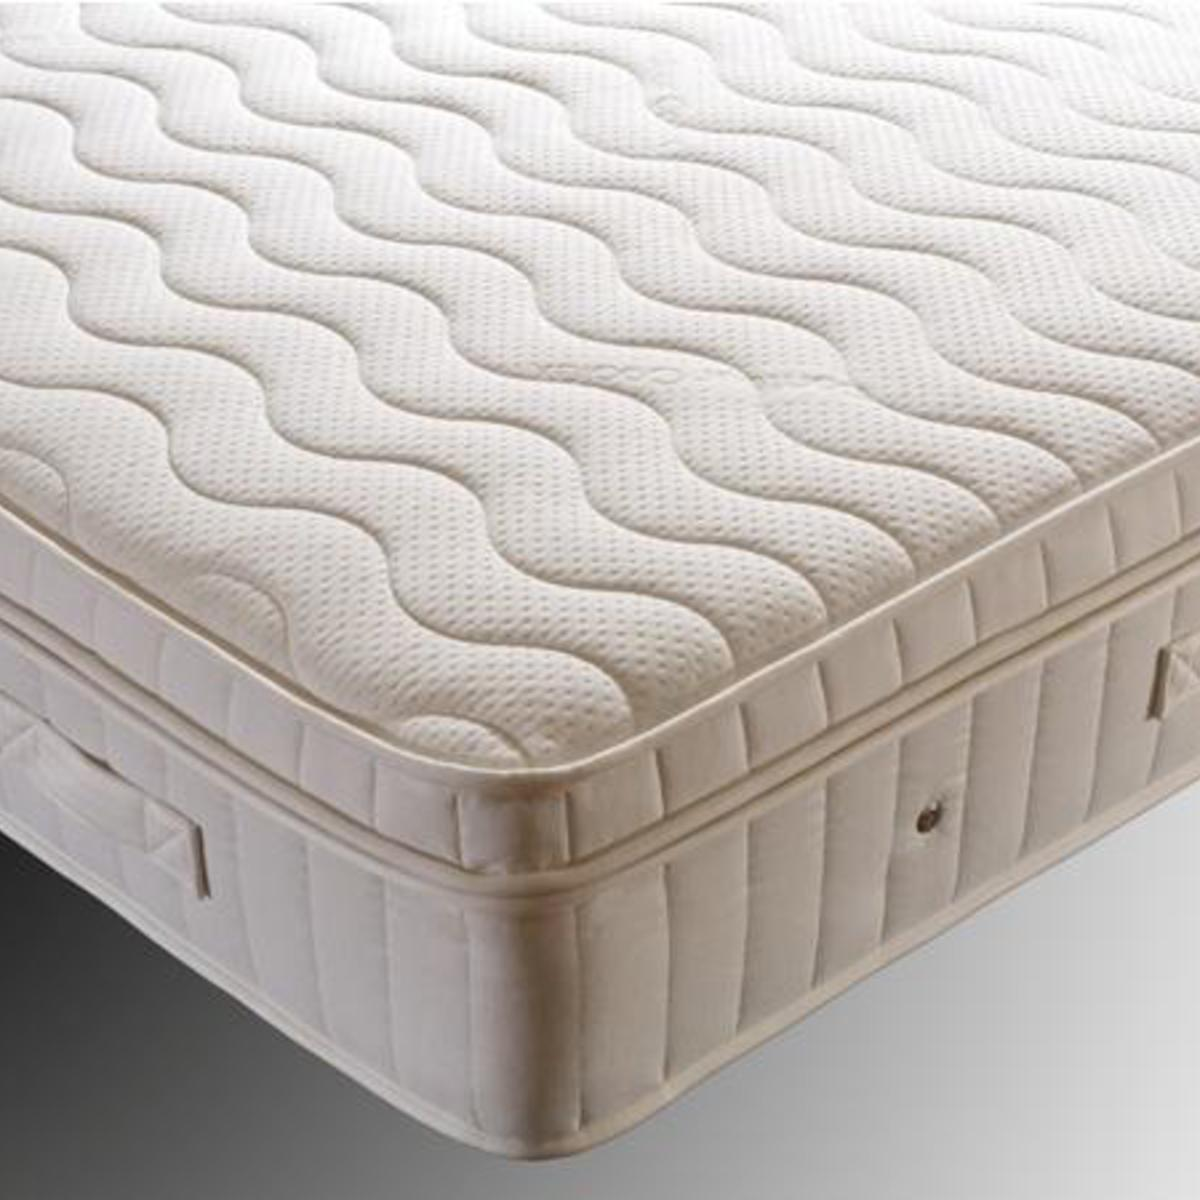 3 4 bed mattress for small double bed pocket spring good 3